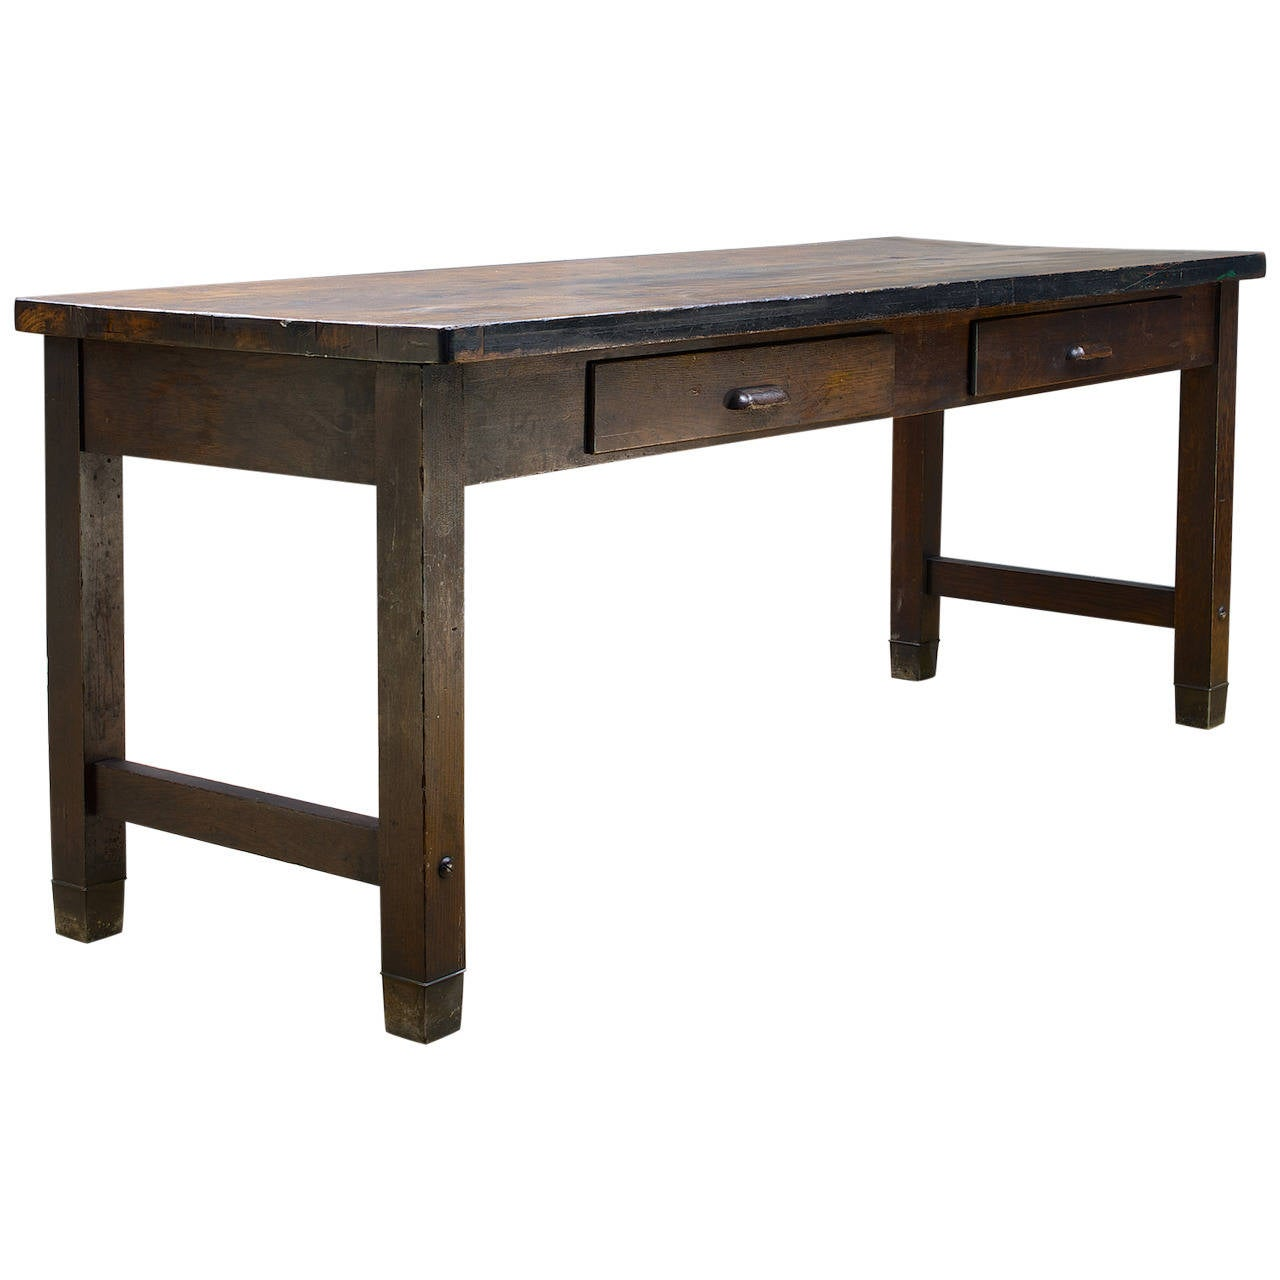 Arts and crafts tables - Arts Crafts Kewaunee Mfg Co Laboratory Library Oak Maple Iron Table 1